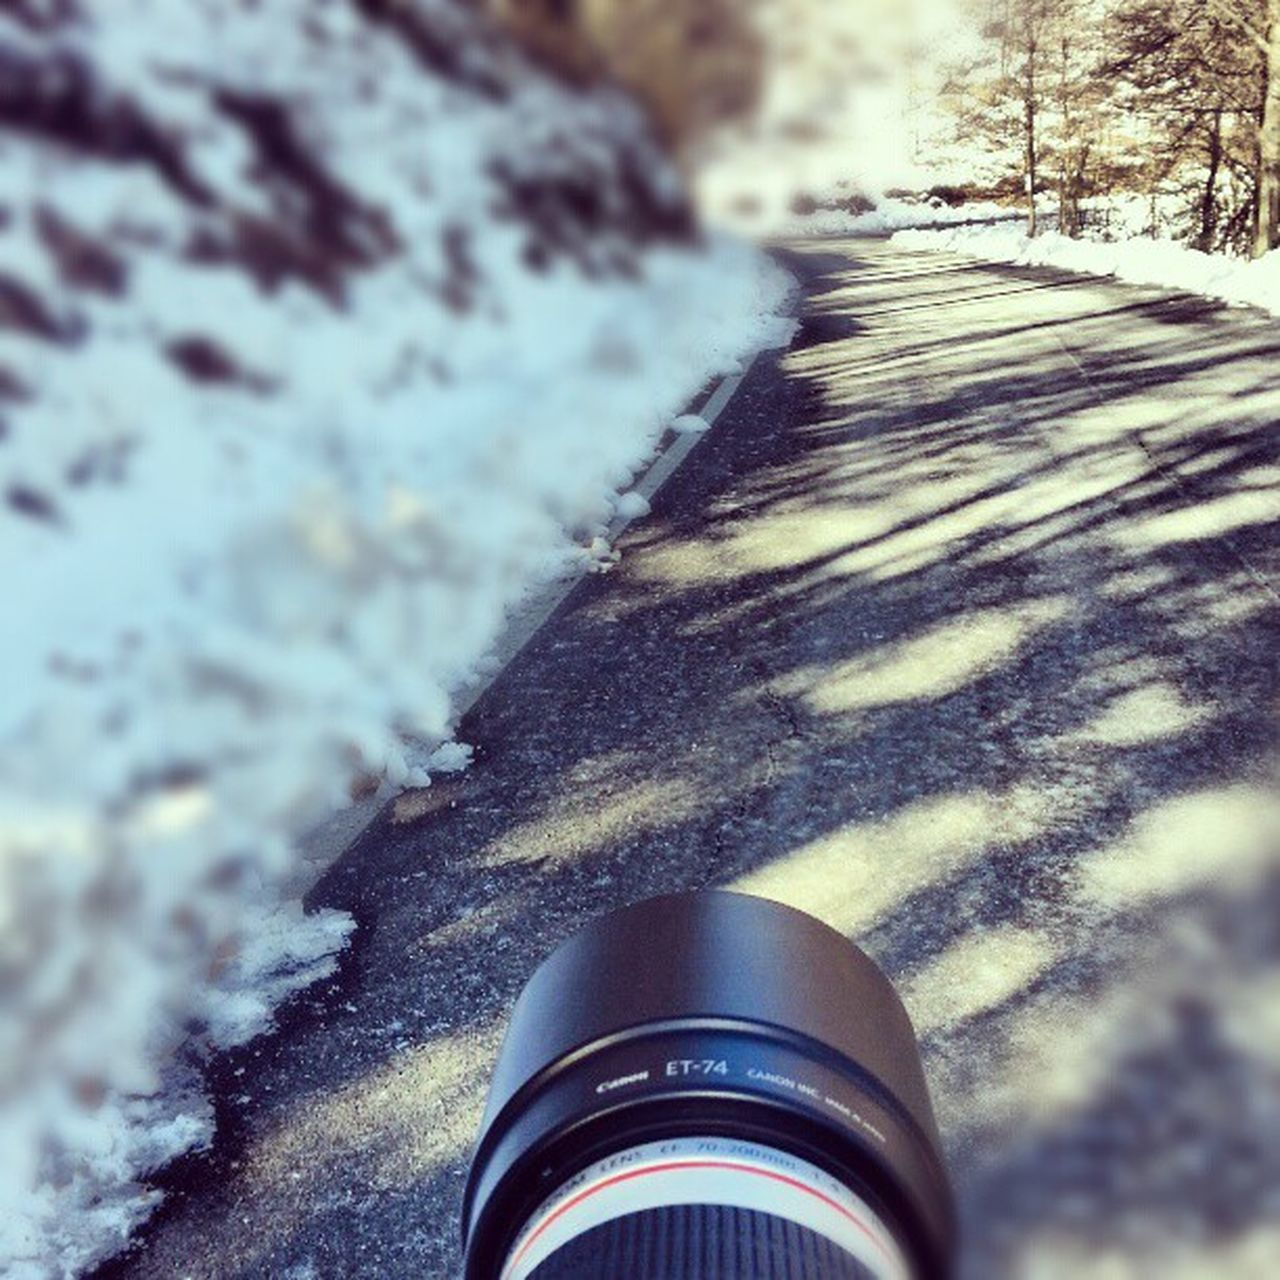 snow, winter, no people, day, close-up, cold temperature, outdoors, nature, tree